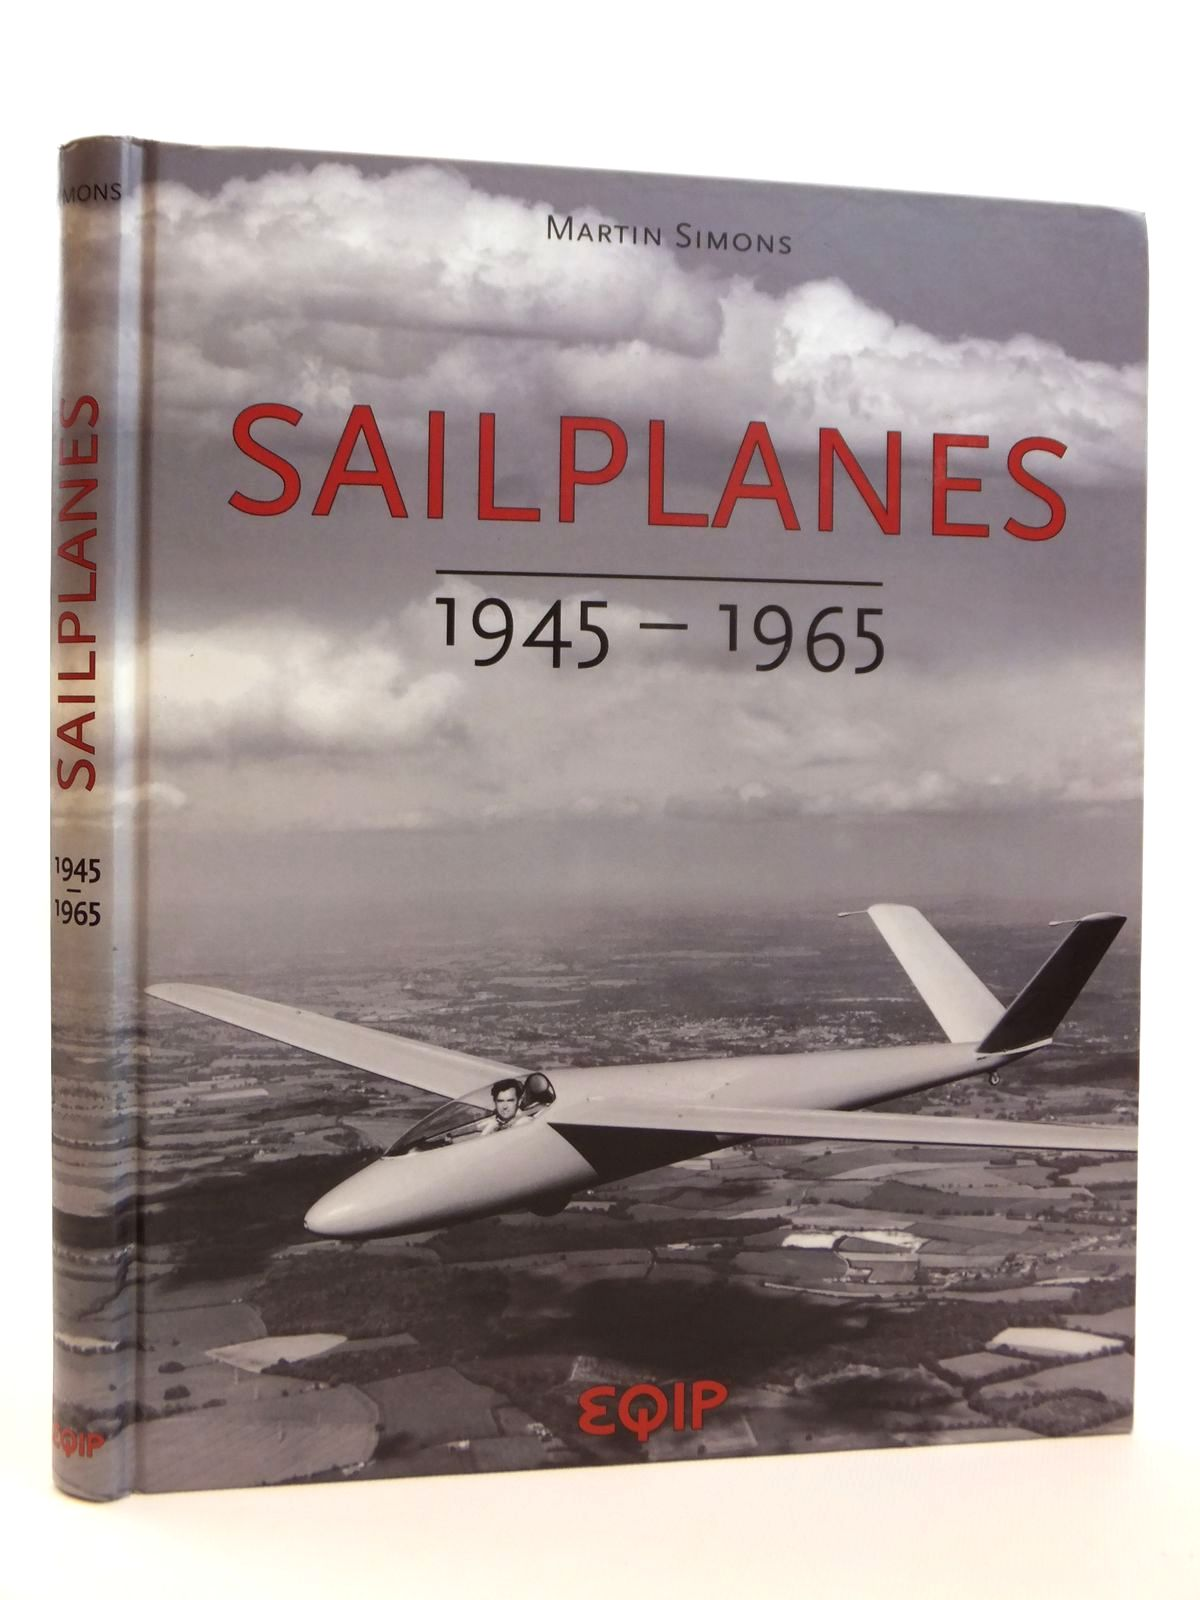 Photo of SAILPLANES 1945 - 1965 written by Simons, Martin published by Equip (STOCK CODE: 2121725)  for sale by Stella & Rose's Books